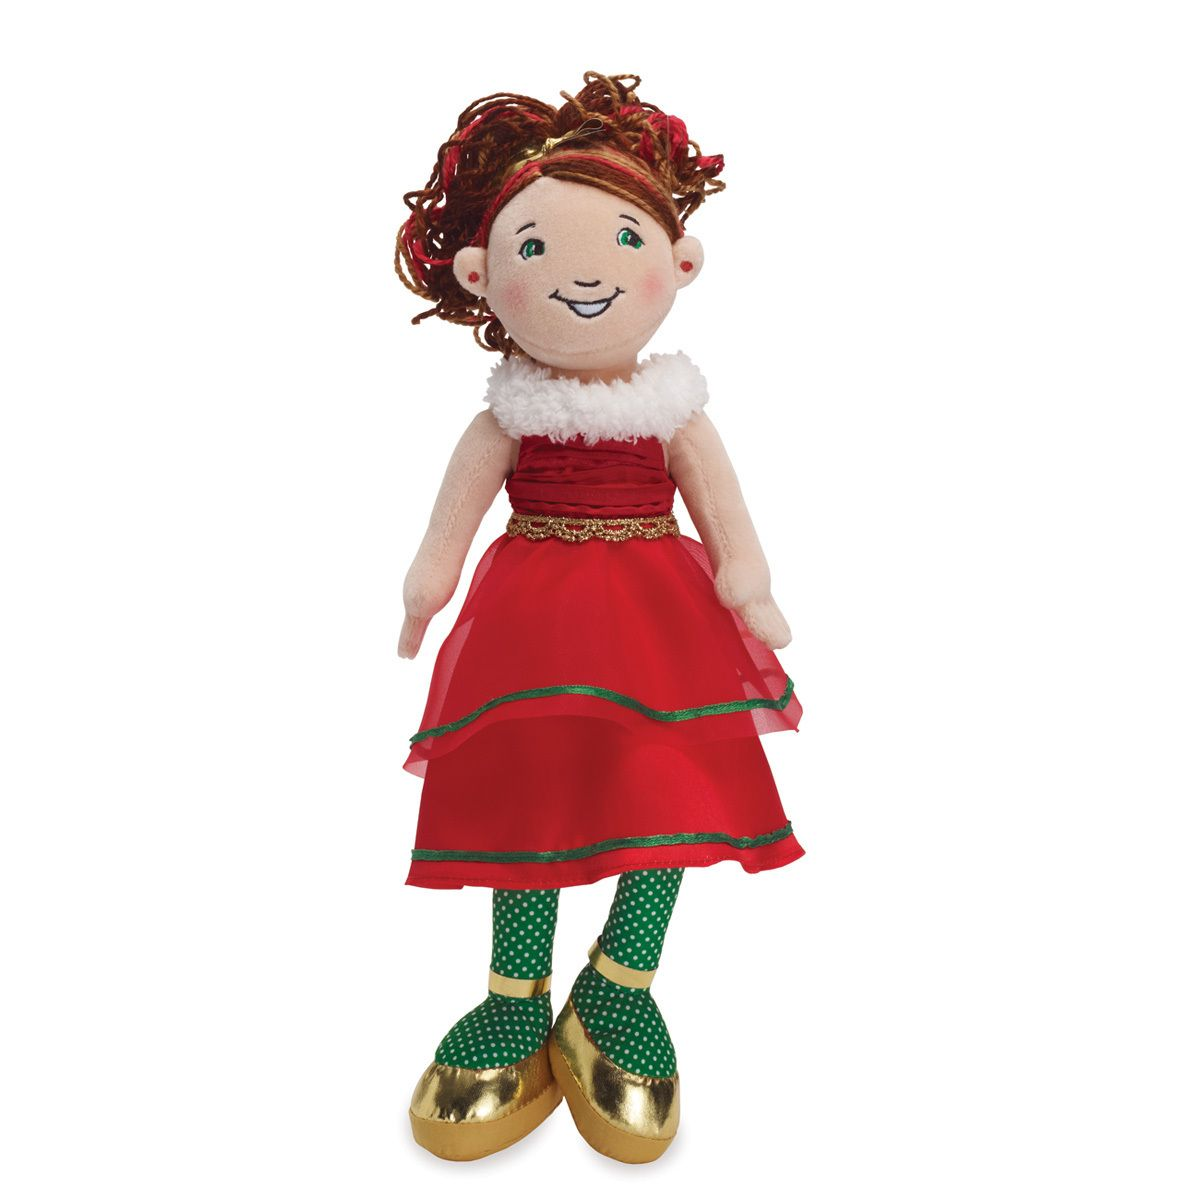 Manhattan Toy Groovy Girl Doll Holiday Wishes Hadley Special Edition